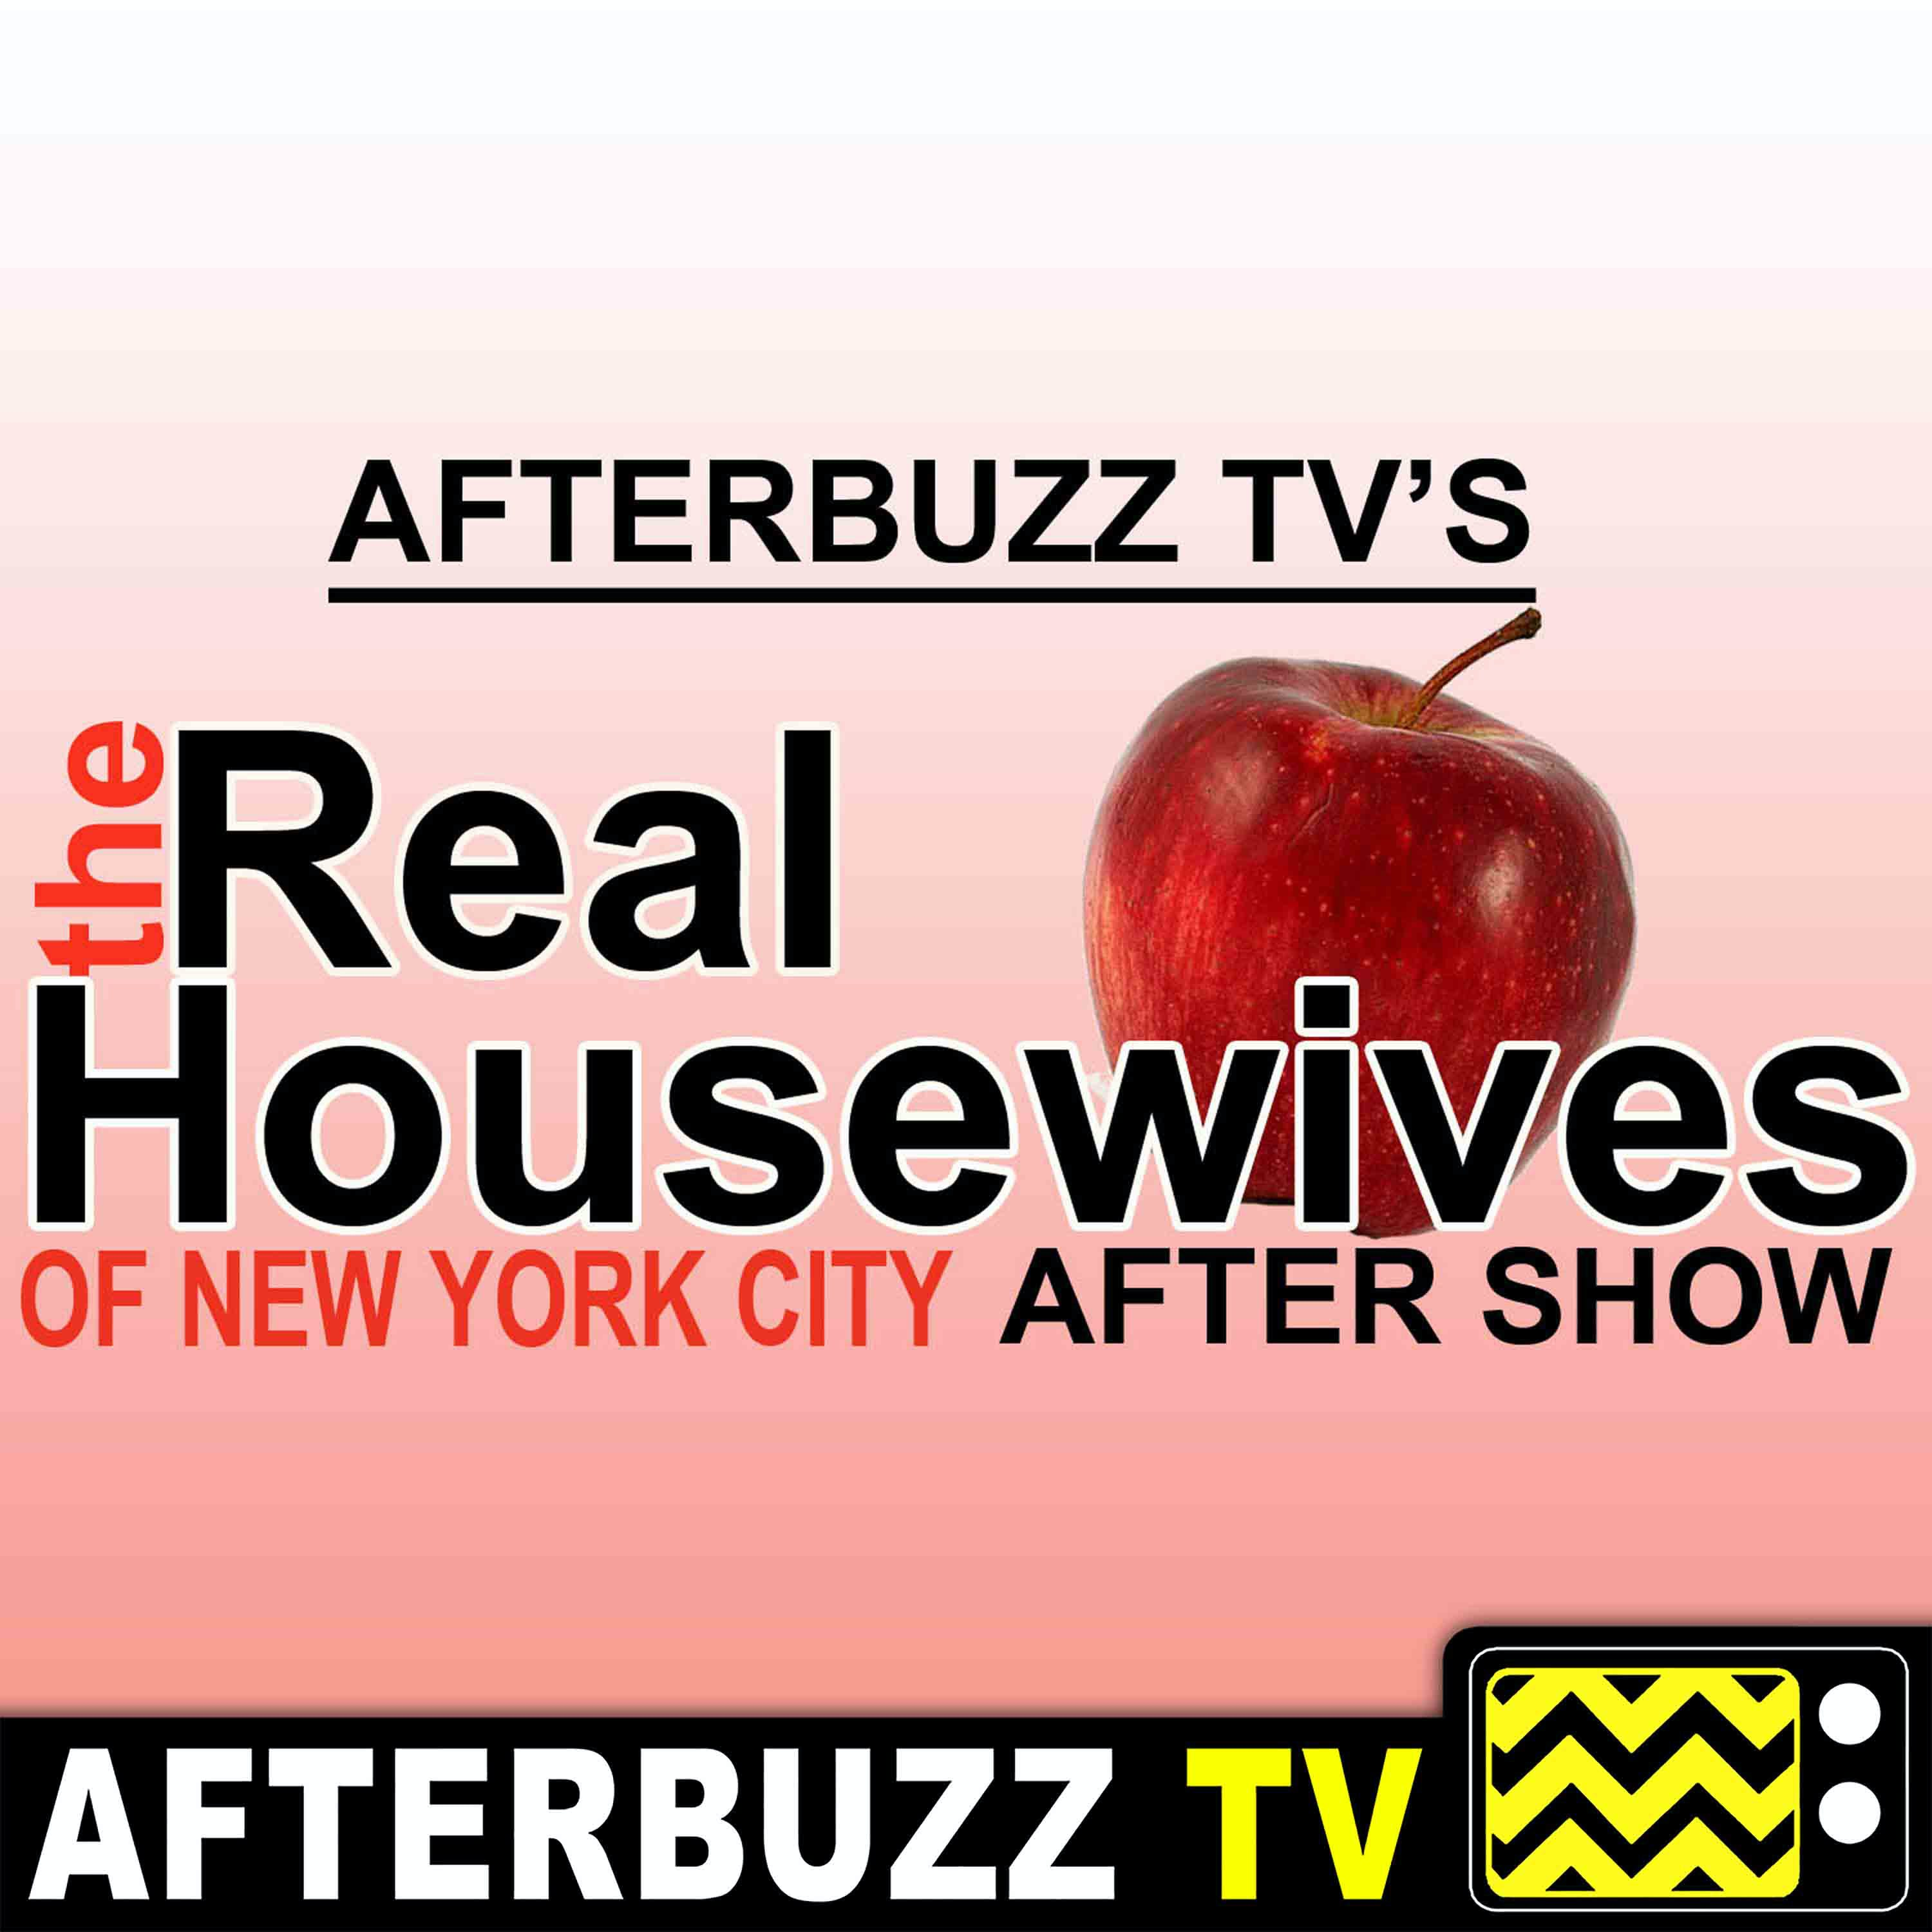 It's the third episode of the season! And it was everything. - S11 E21 'Real Housewives of NYC' After Show